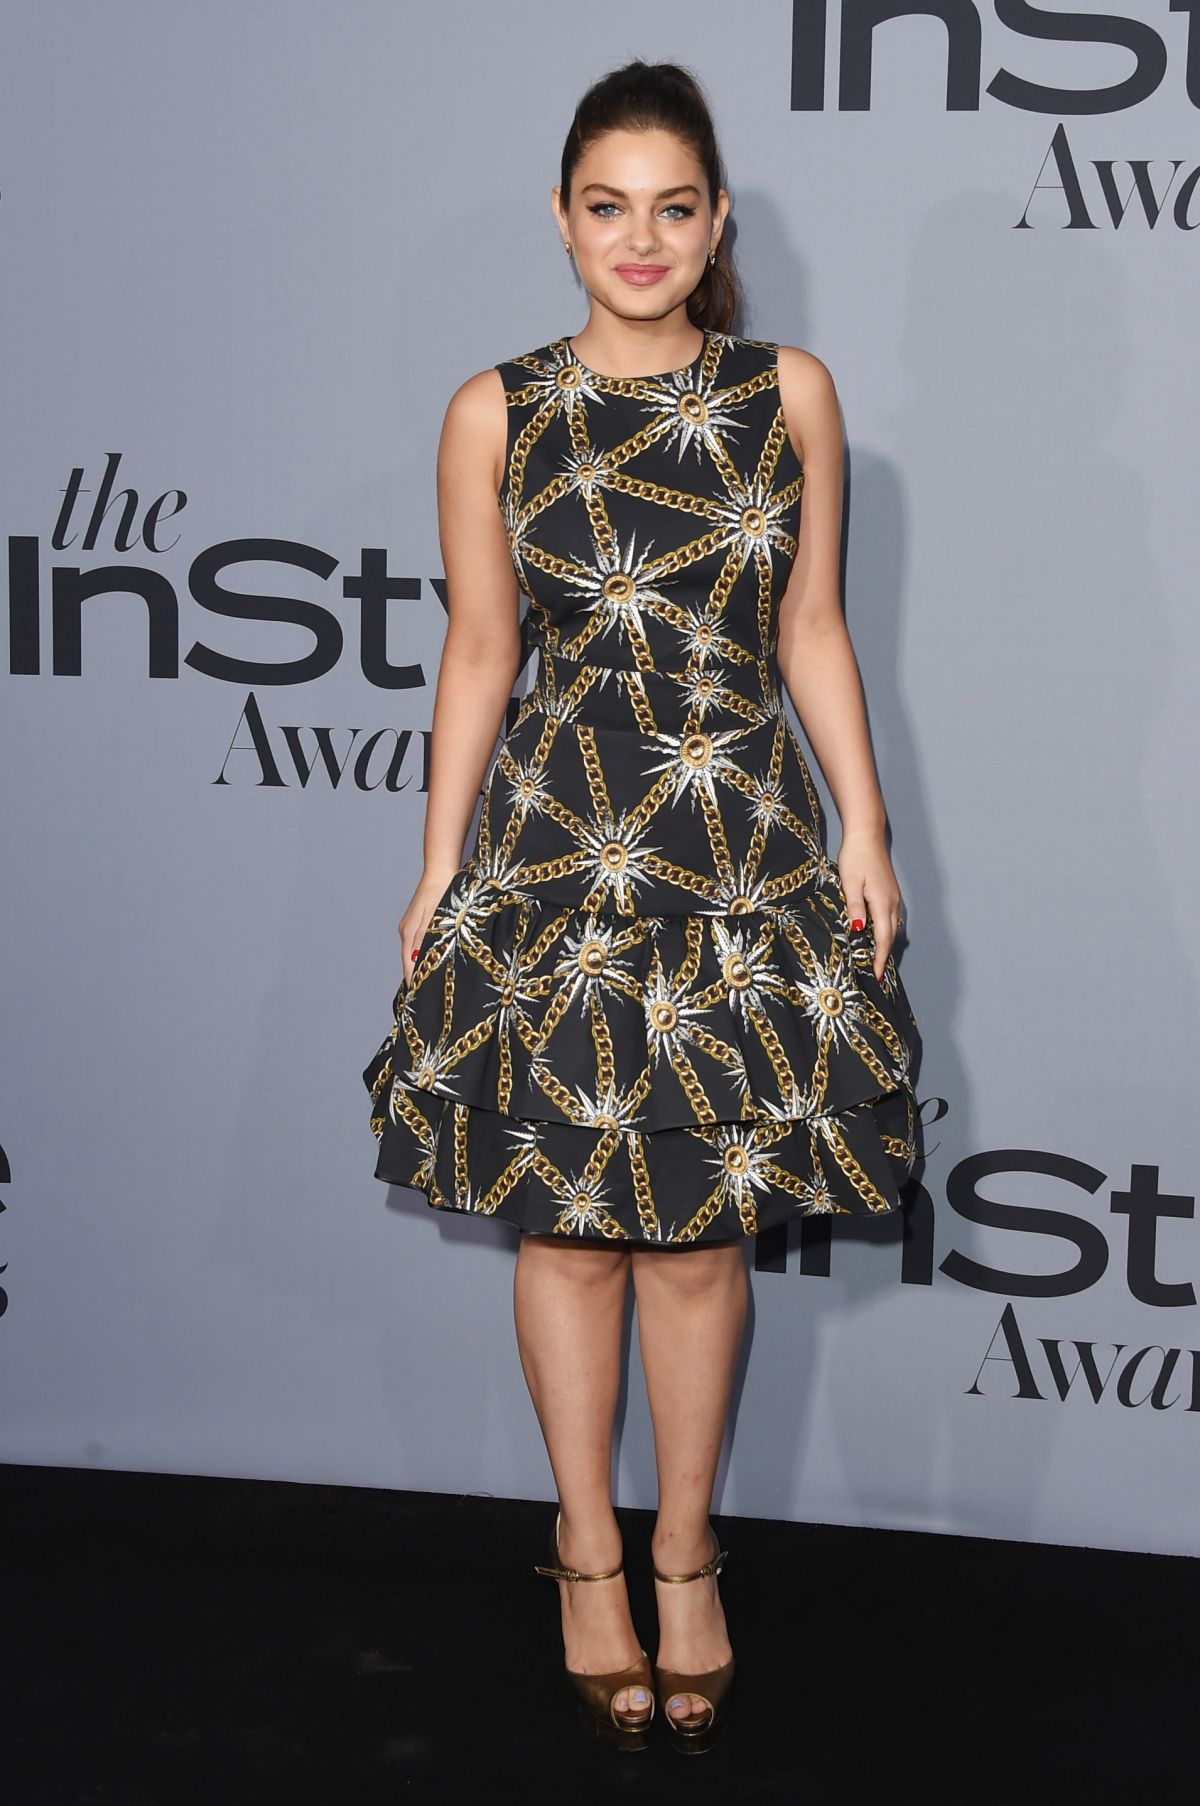 ODEYA RUSH at InStyle Awards 2015 in Los Angeles 10/26/2015